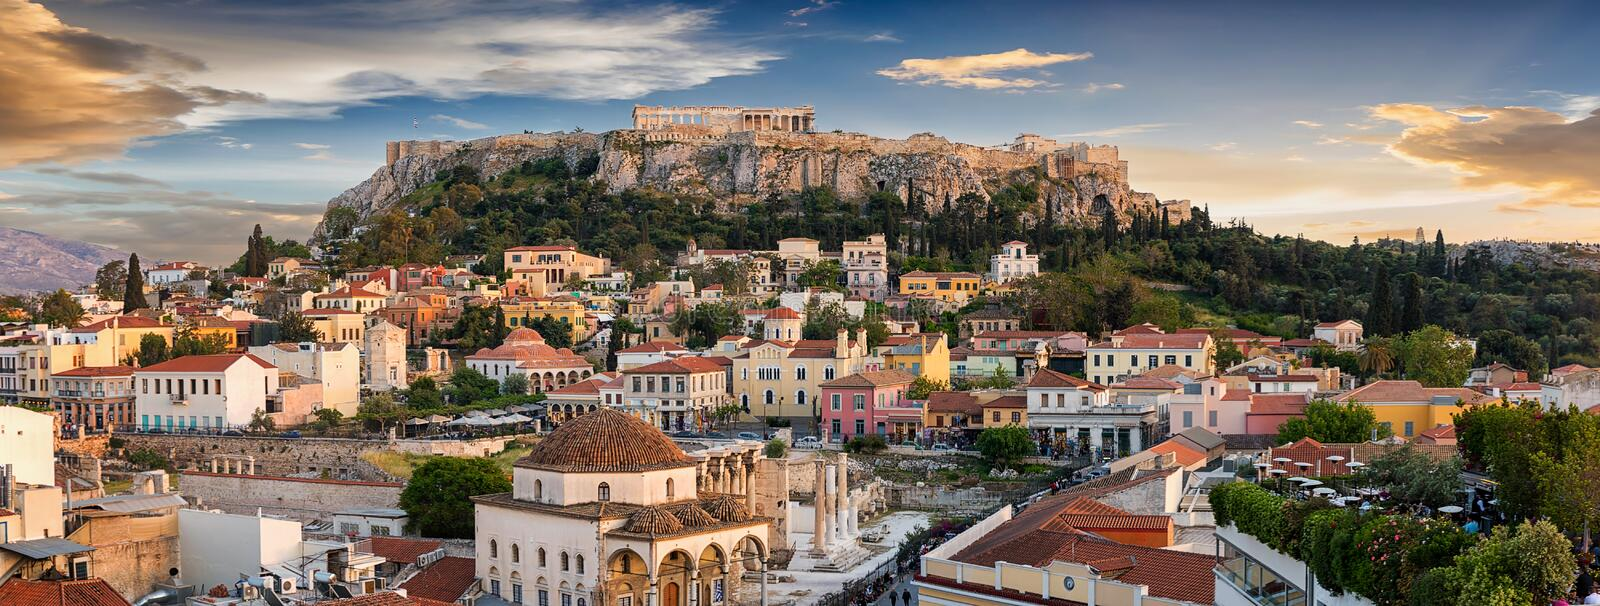 Panoramic view over the old town of Athens and the Parthenon Temple of the Acropolis. During sunset royalty free stock image